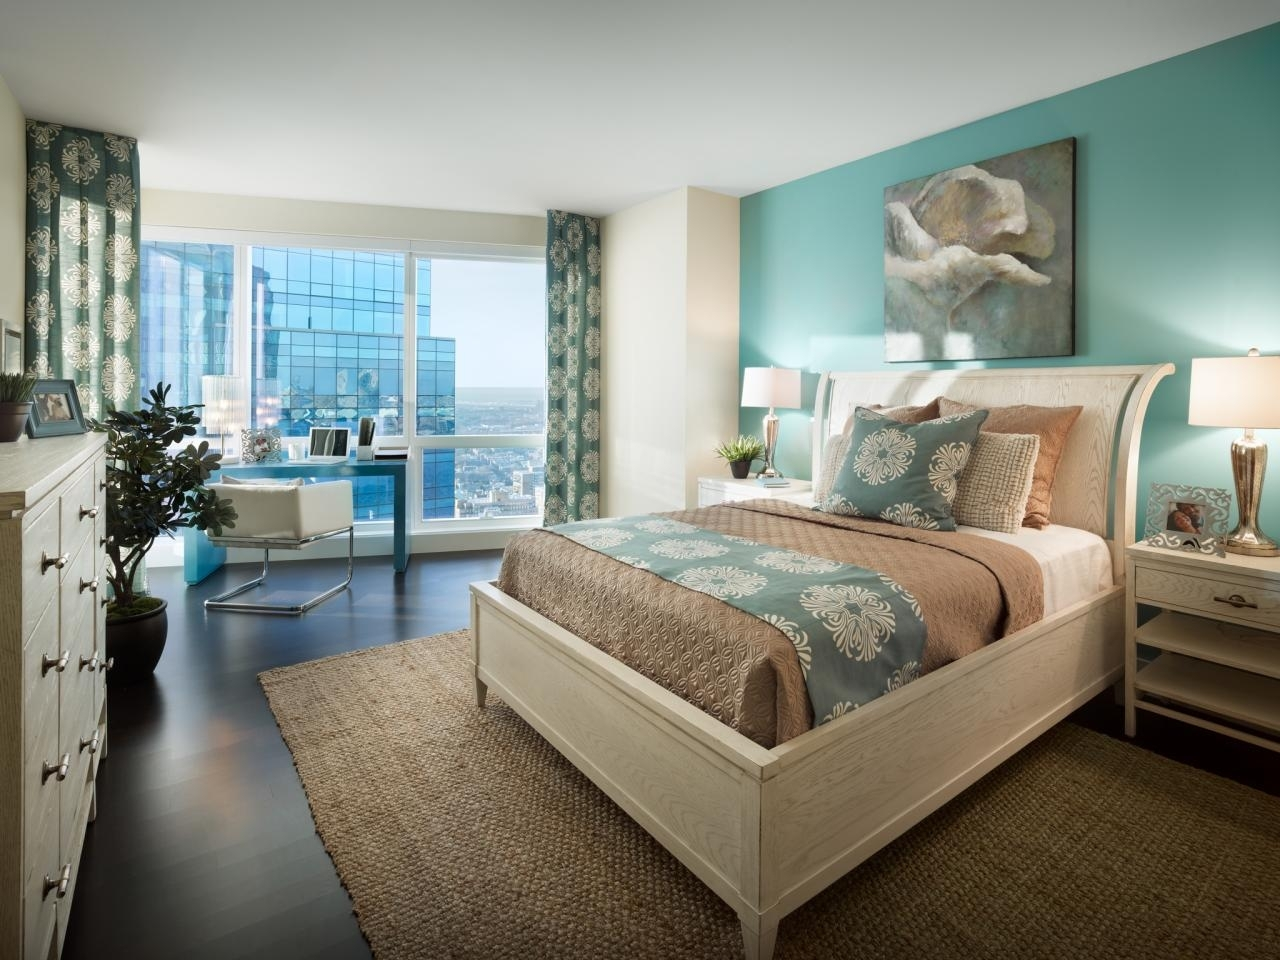 Bedroom | Coastal Accent Use Aquamarine Wall Accent – Contrast Way Inside Most Popular Wall Accents For Beige Room (Gallery 15 of 15)